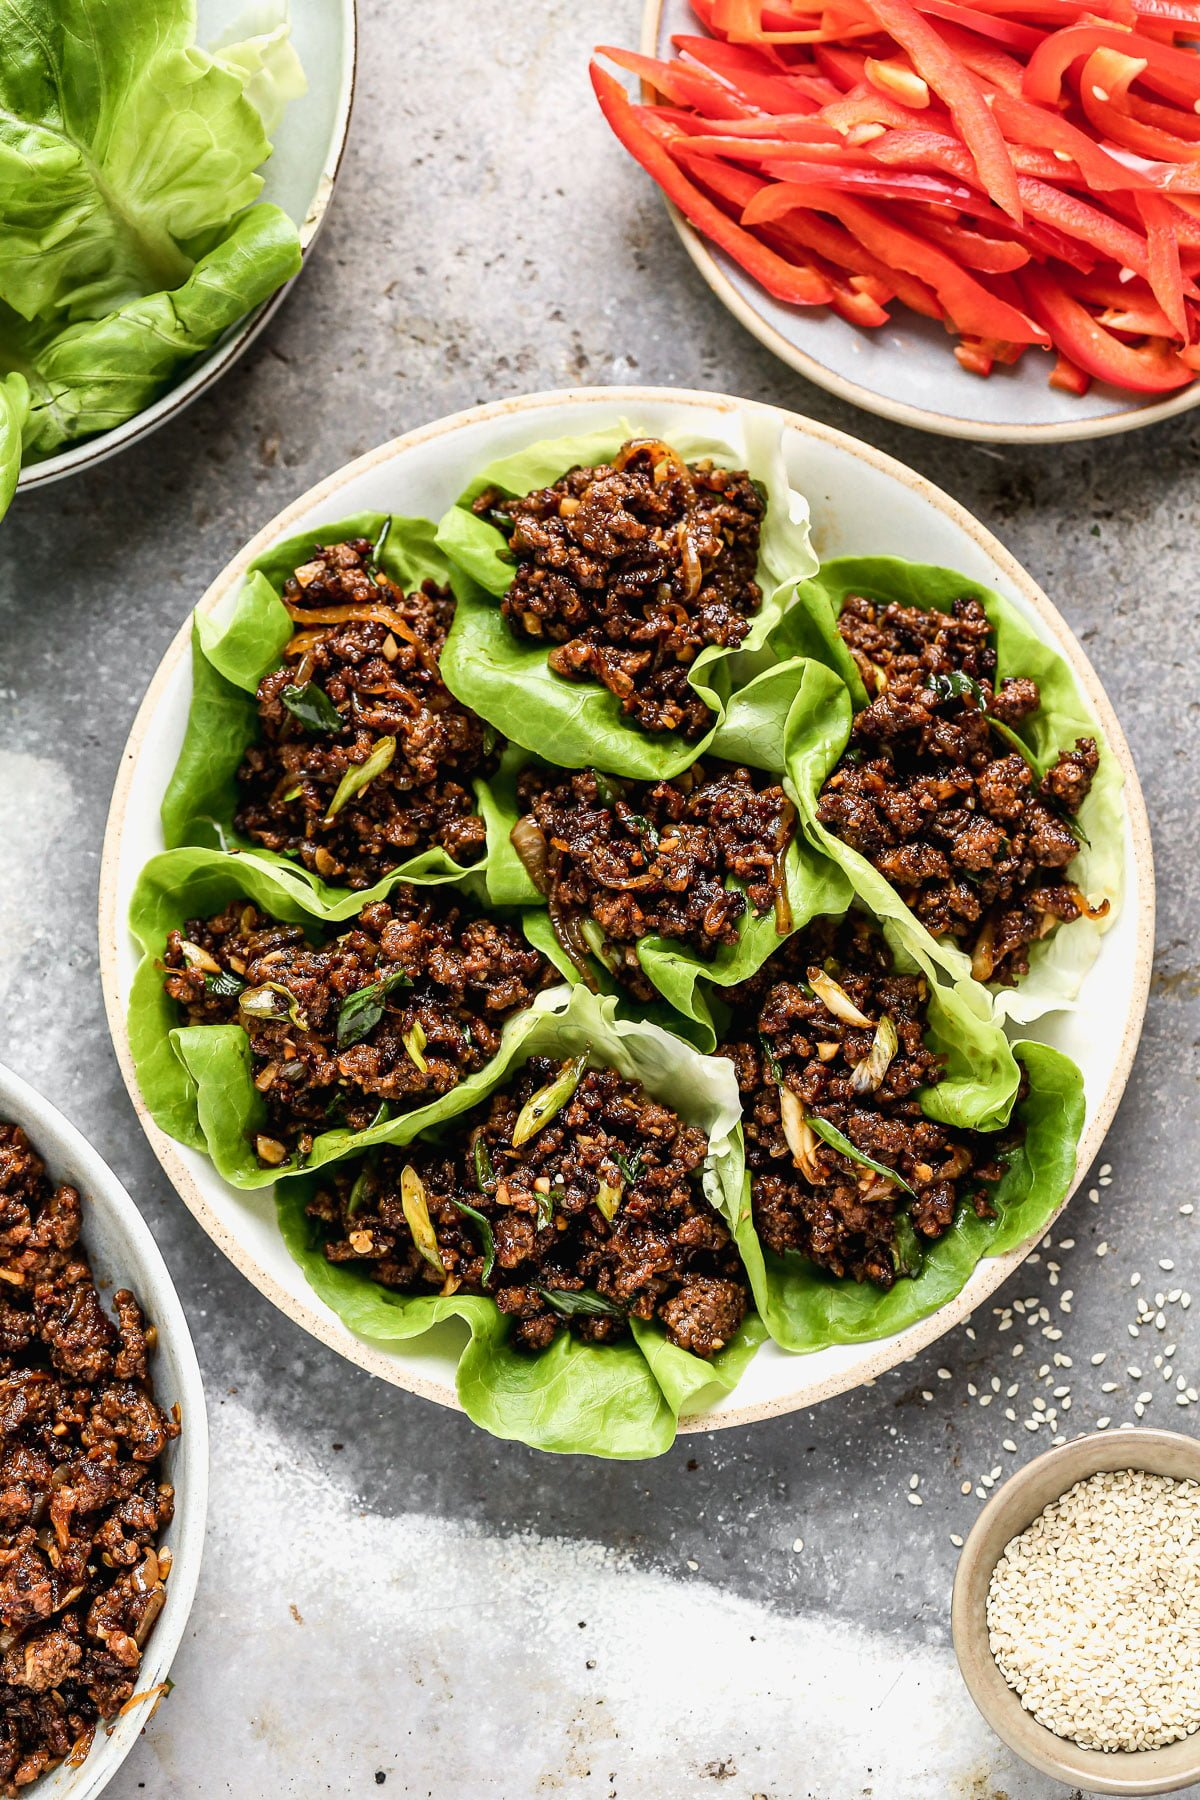 Ultra crispy and smothered in a soy-based sauce studded with rich brown sugar, sweet mirin wine, and brimming with heat from Sambal Oelek, these Beef Lettuce Wraps are my new favorite way to do lettuce. With easy-to-find ingredients, and minimal prep and cook time, they're also the perfect way to get dinner on the table without  much effort.